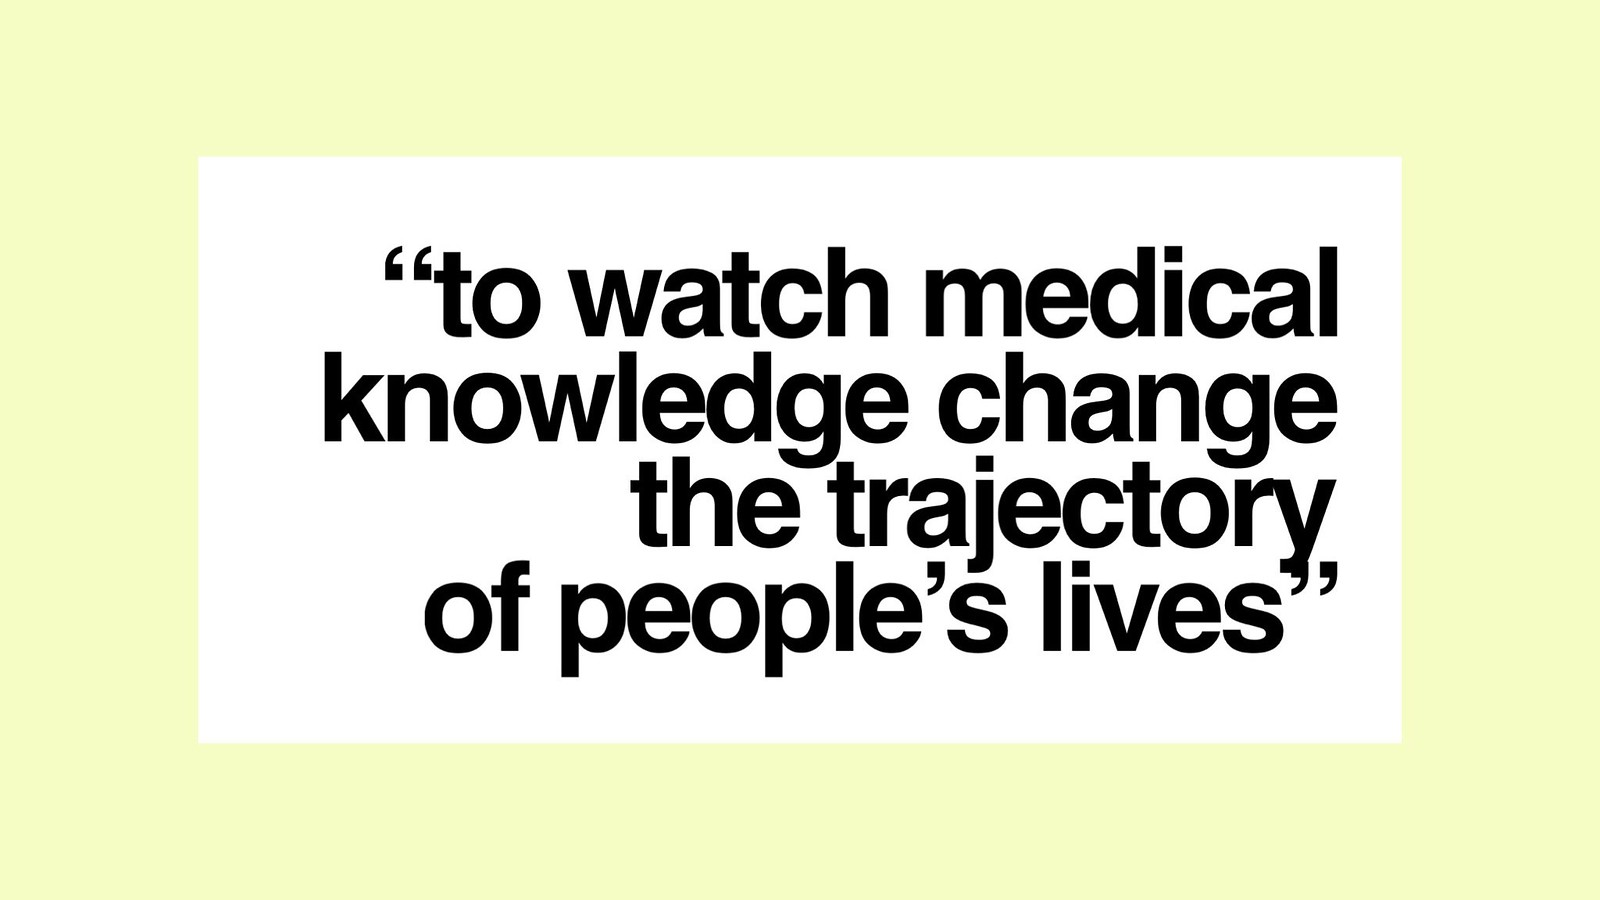 To watch medical knowledge change the trajectory of people's lives.